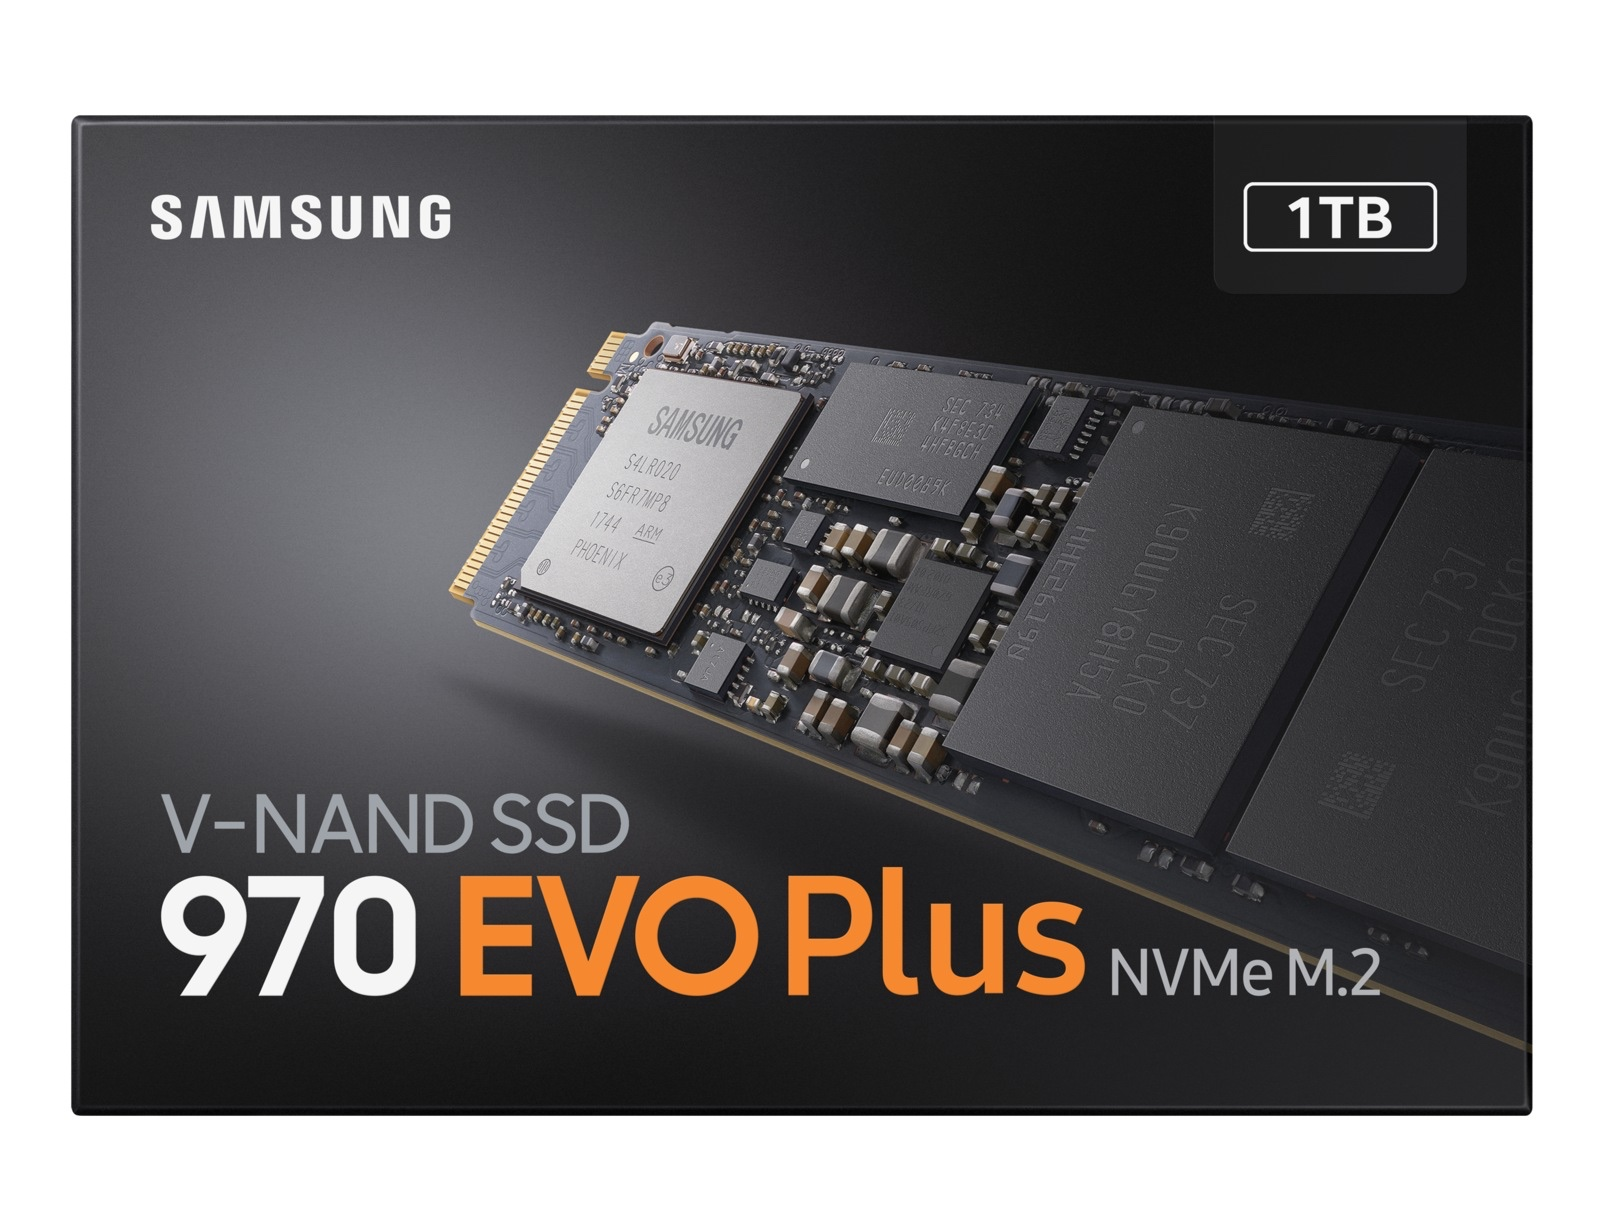 Switching to NVMe SSD – frans goes blog